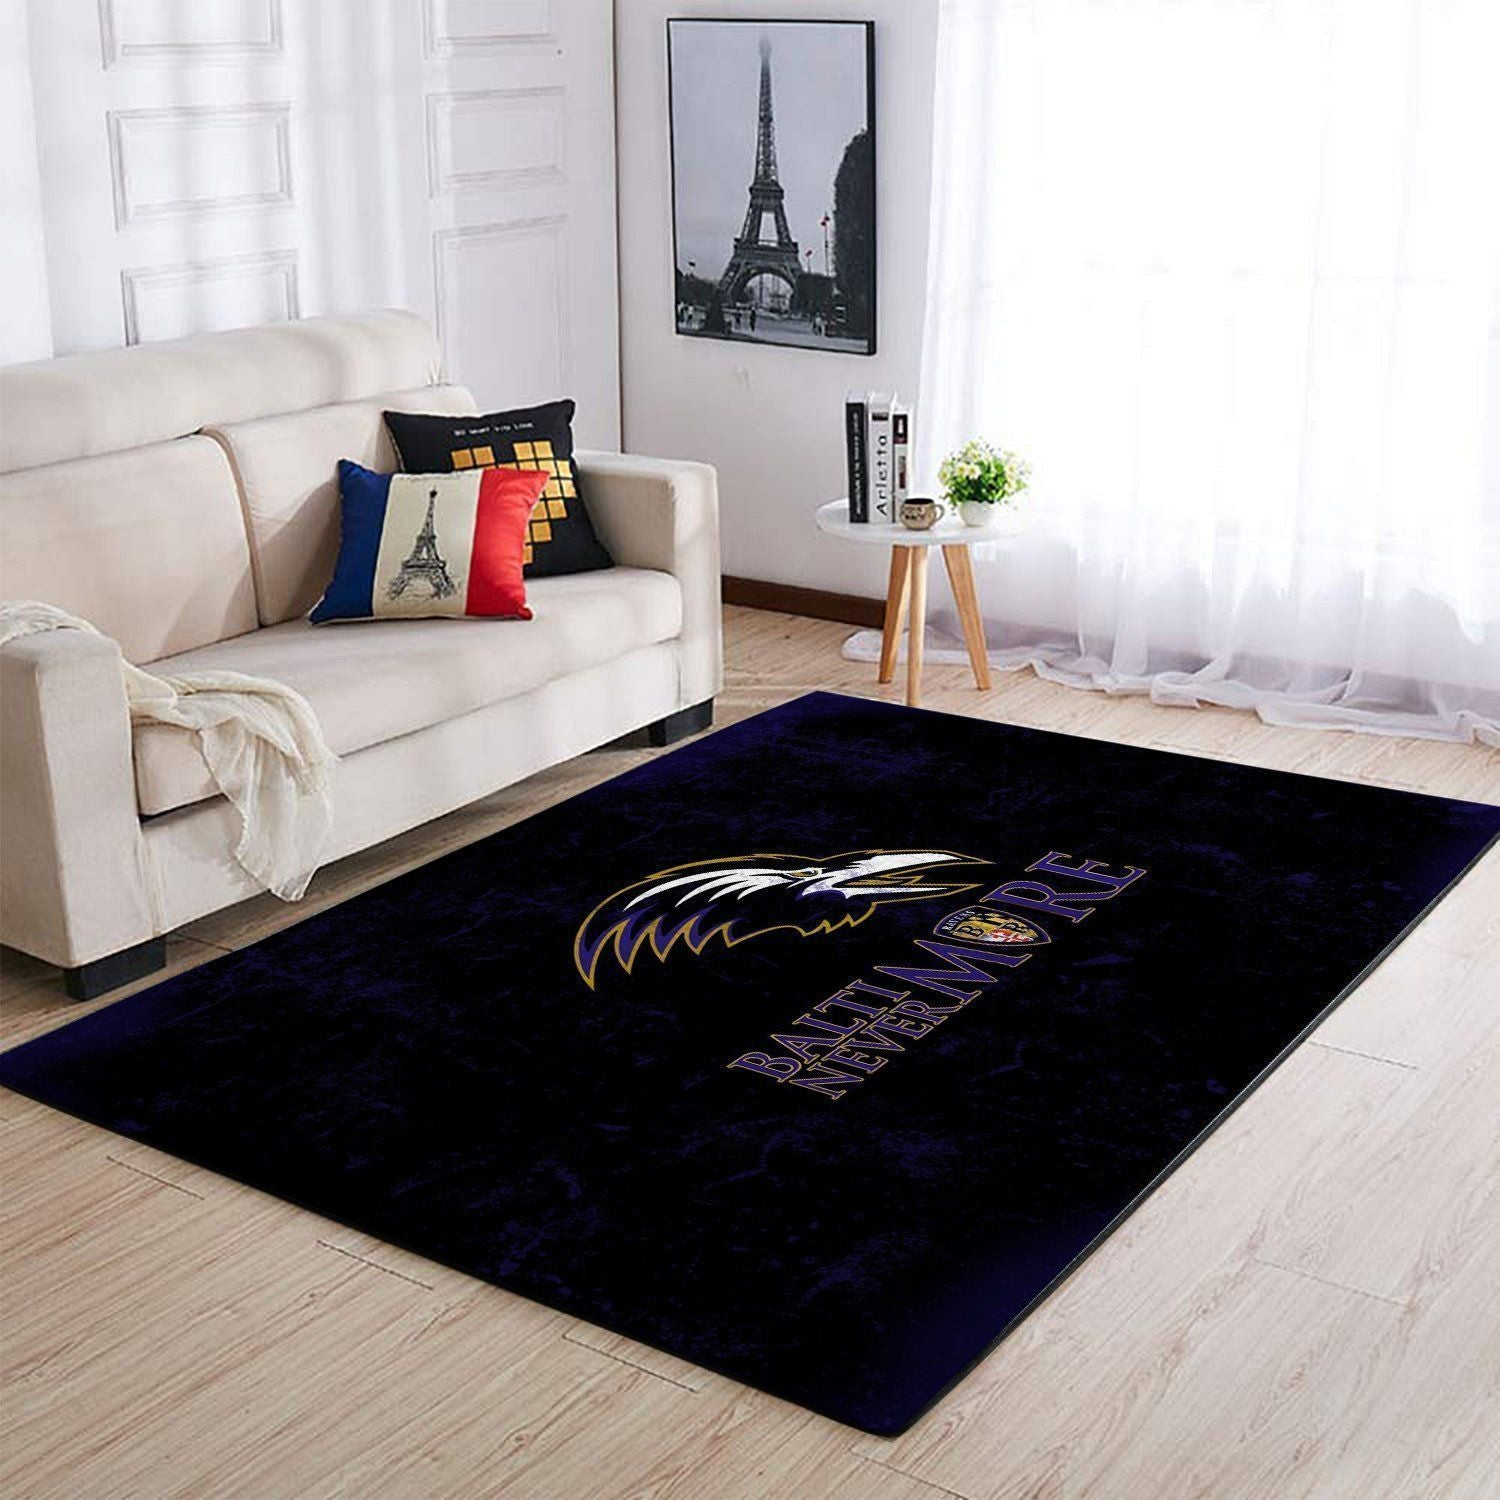 Baltimore Ravens Area Rugs NFL Football Living Room Carpet Team Logo Custom Floor Home Decor 1910072